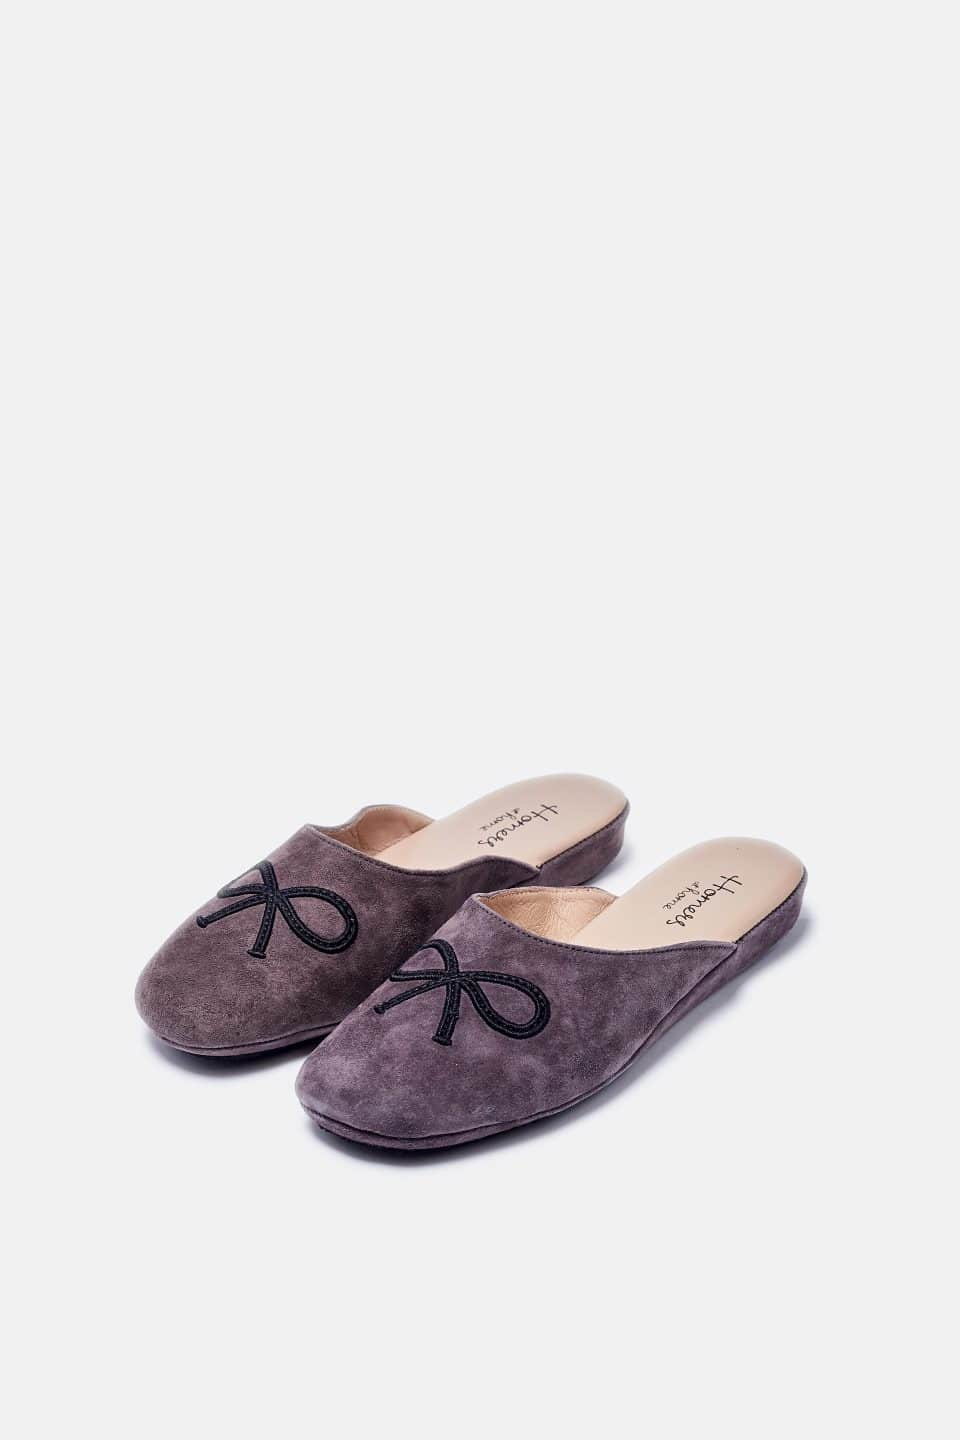 Homers Ante Aviatore Chinela Mujer Homers en Loyna Shoes